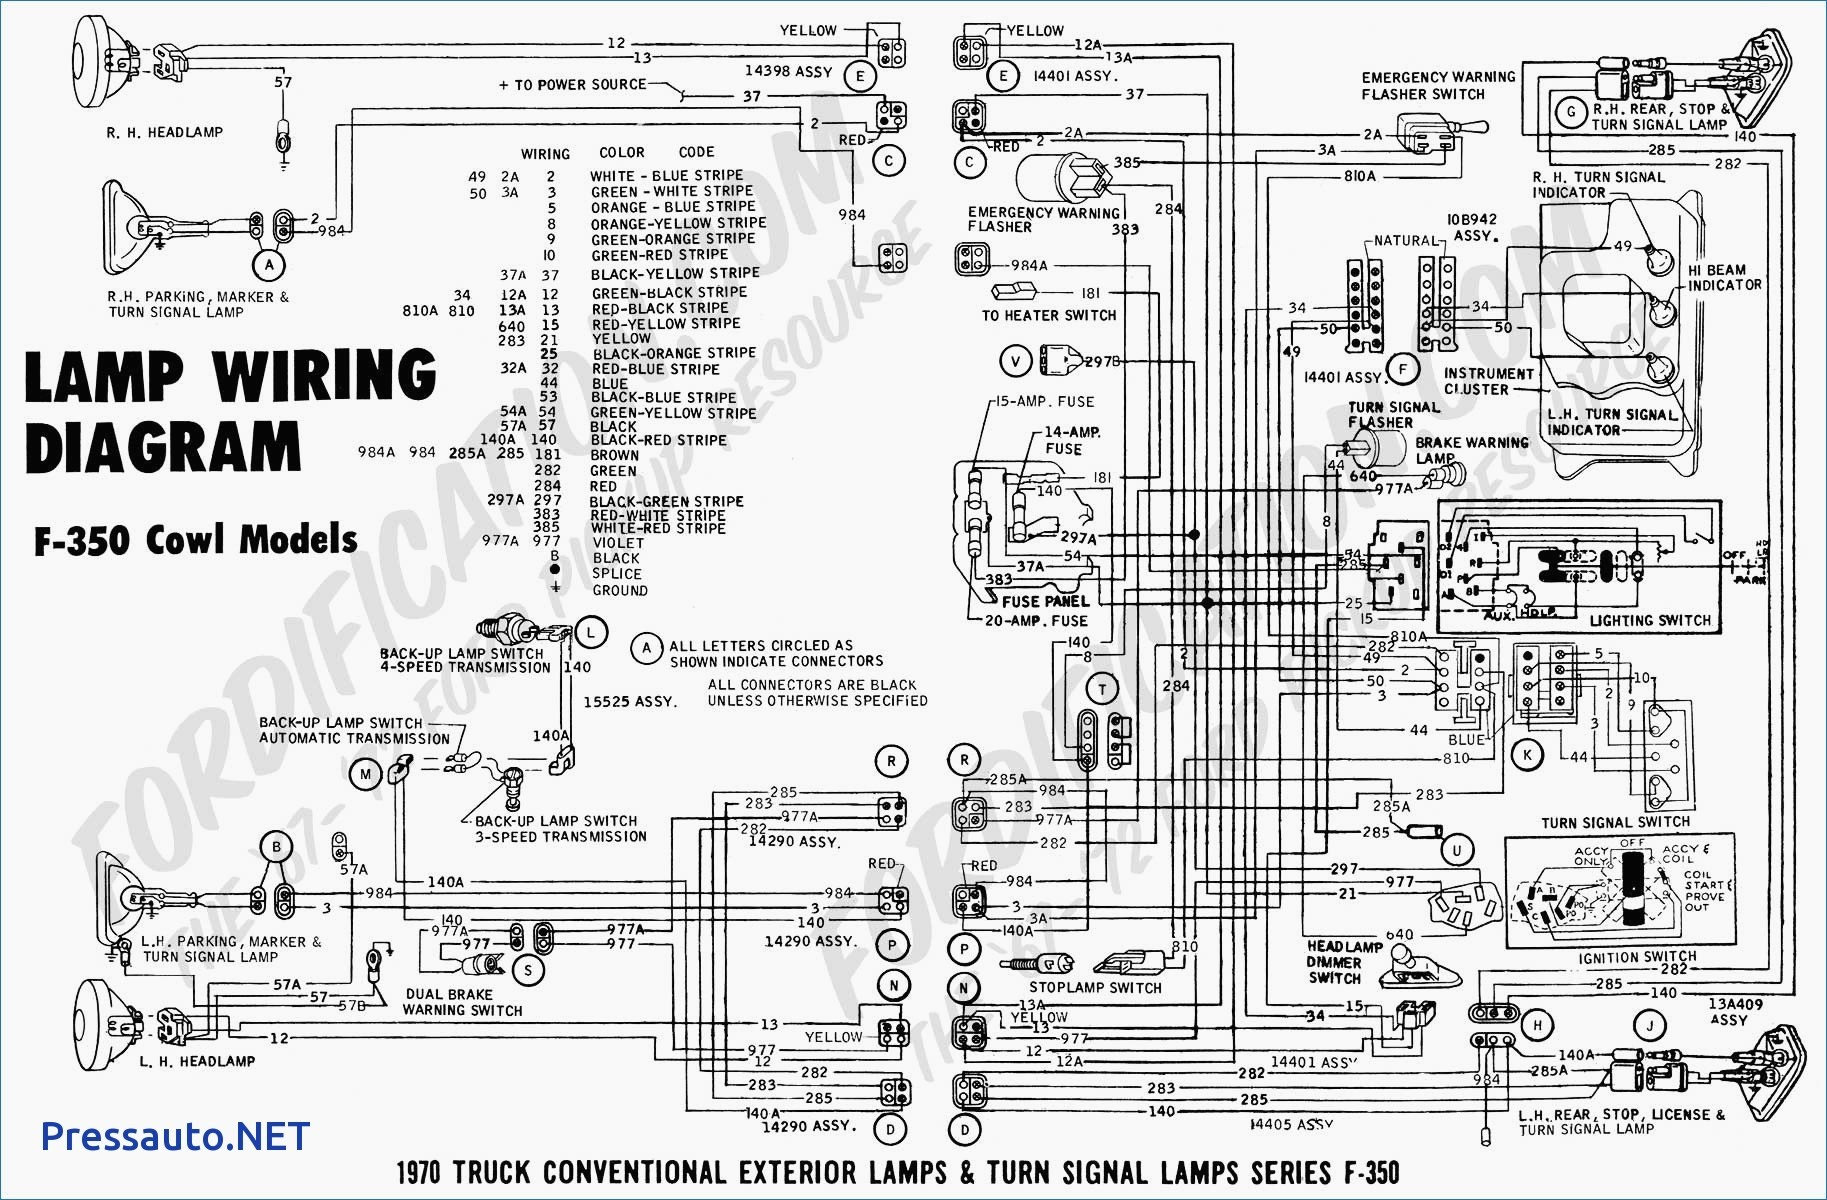 1995 Ford Explorer Engine Diagram Kawasaki Parts Diagrams I Need The Wiring For A 1996 Radio